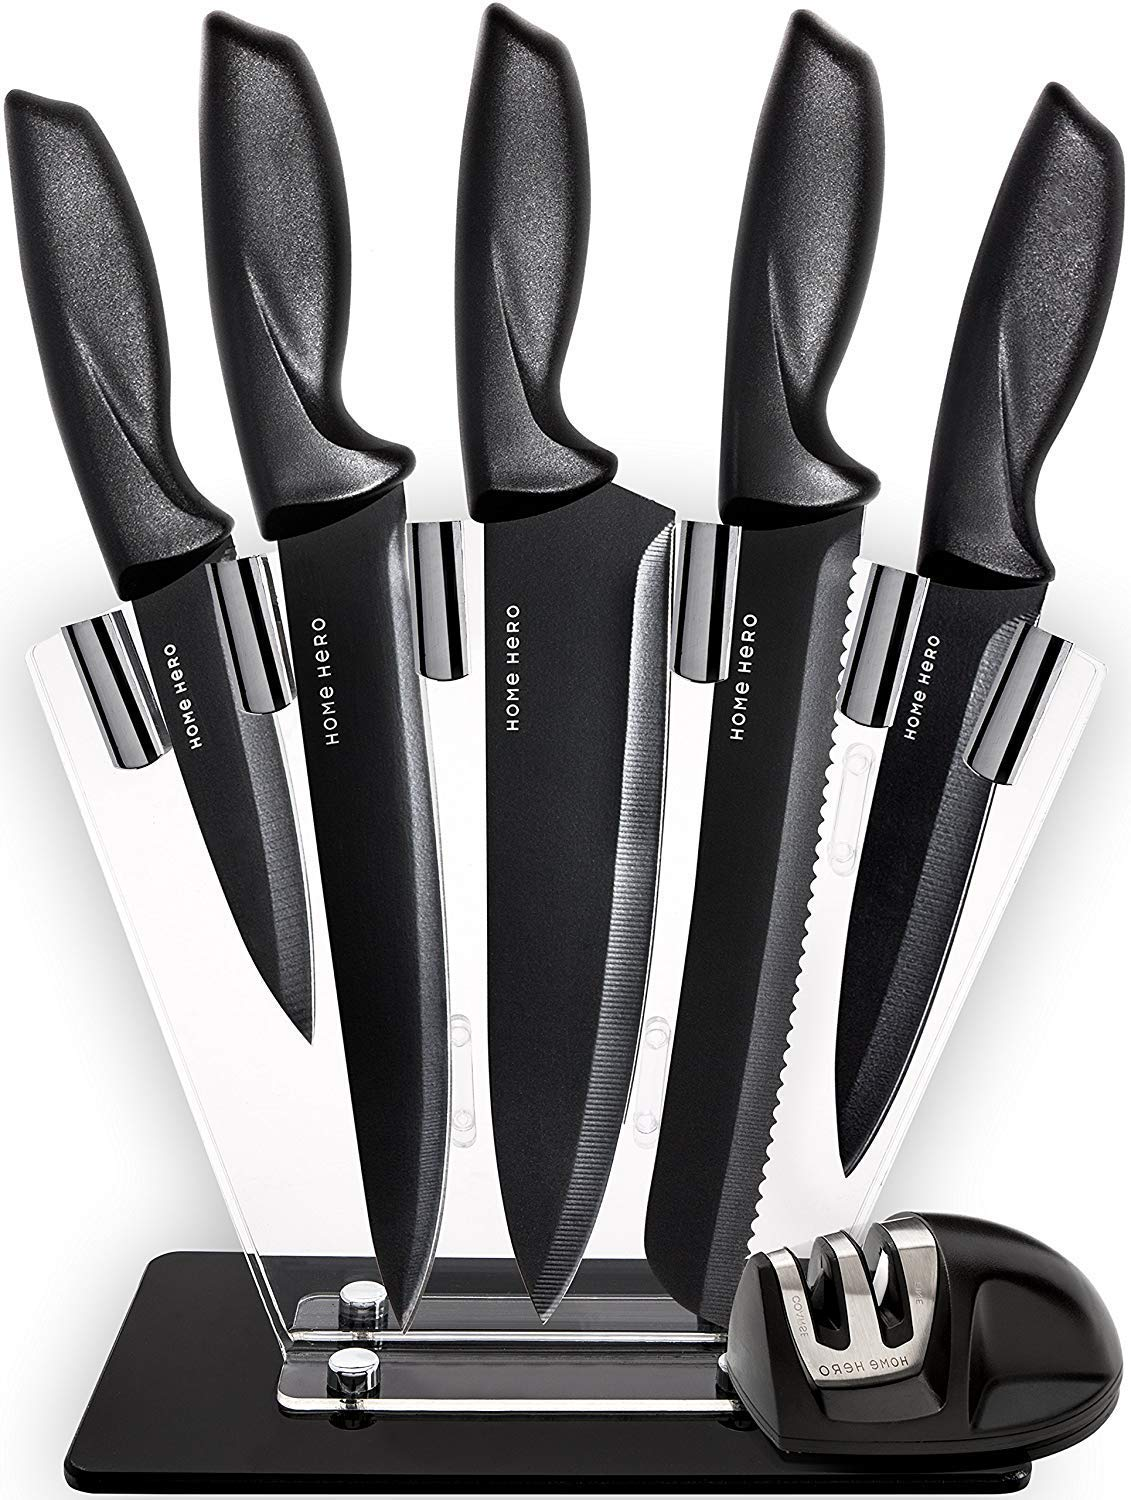 Chef Knife Set Knives Kitchen Set - Stainless Steel Kitchen Knives Set Kitchen Knife Set with Stand - Plus Professional Knife Sharpener - 7 Piece Stainless Steel Cutlery Knives Set by Home Hero by Home Hero